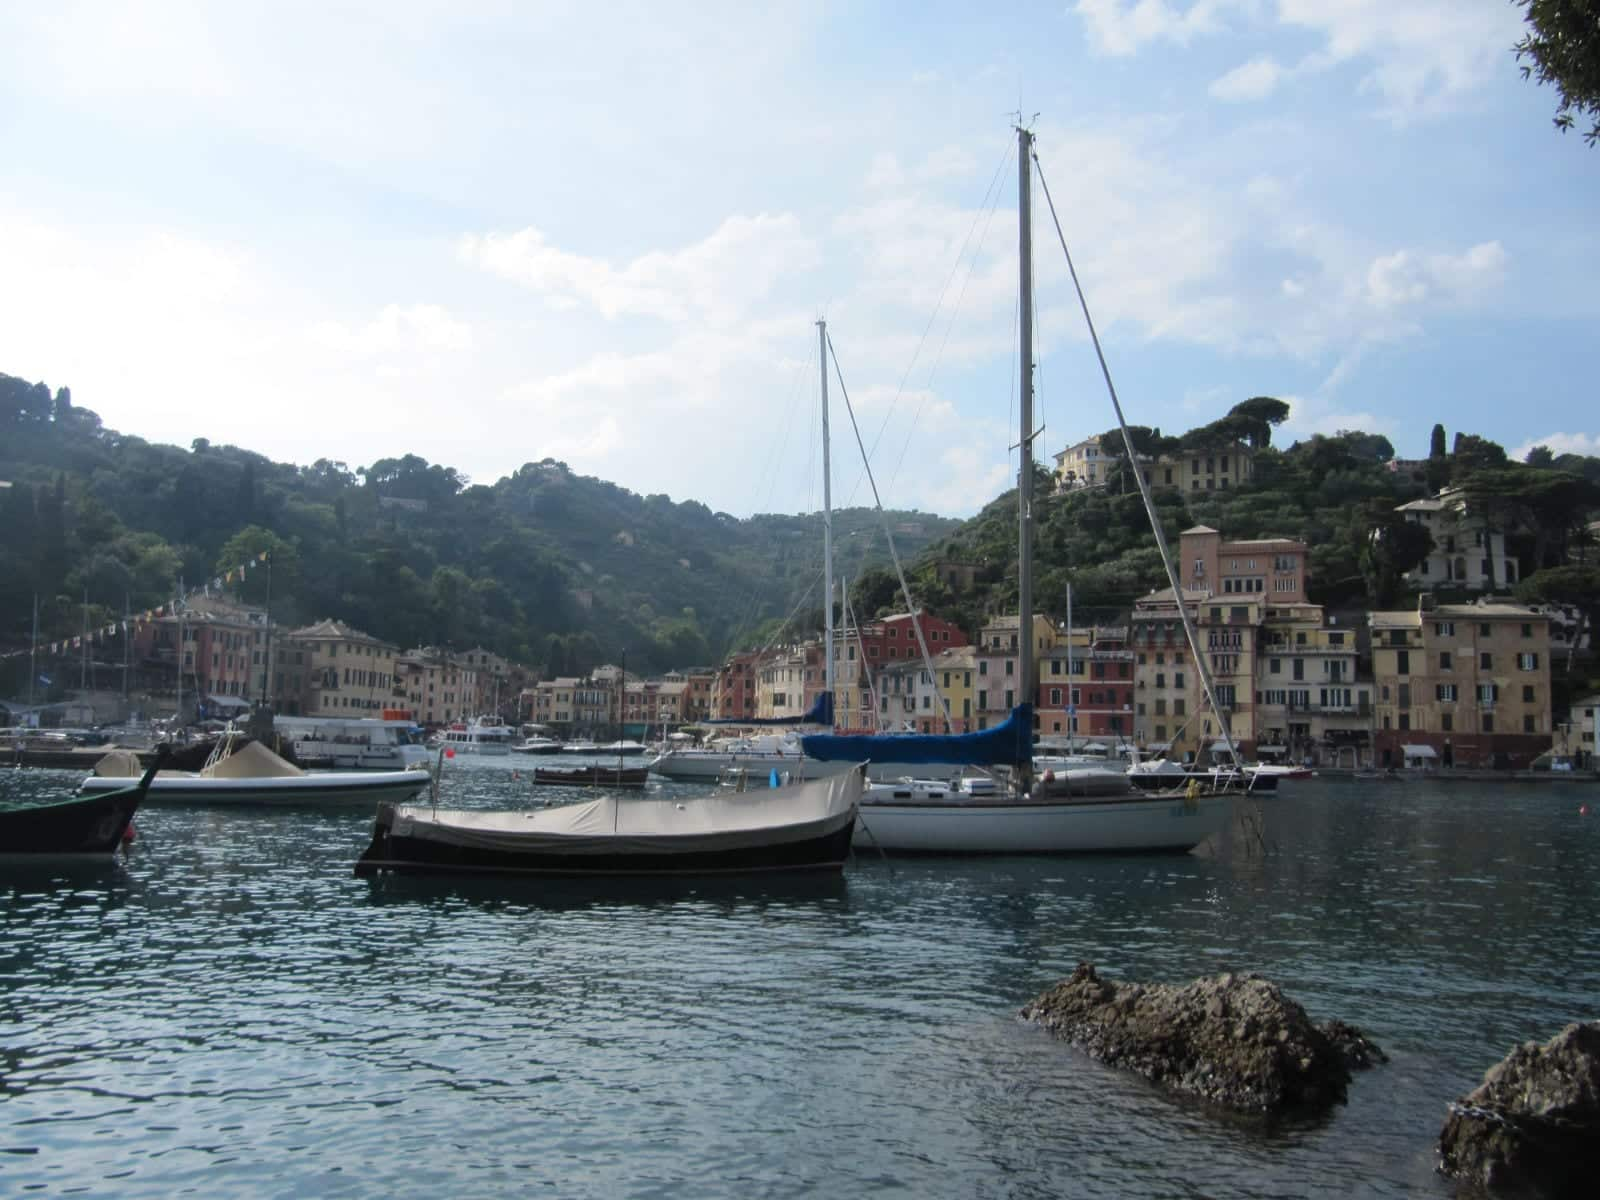 Girls Who Travel | Boats sit in the harbor in Portofino